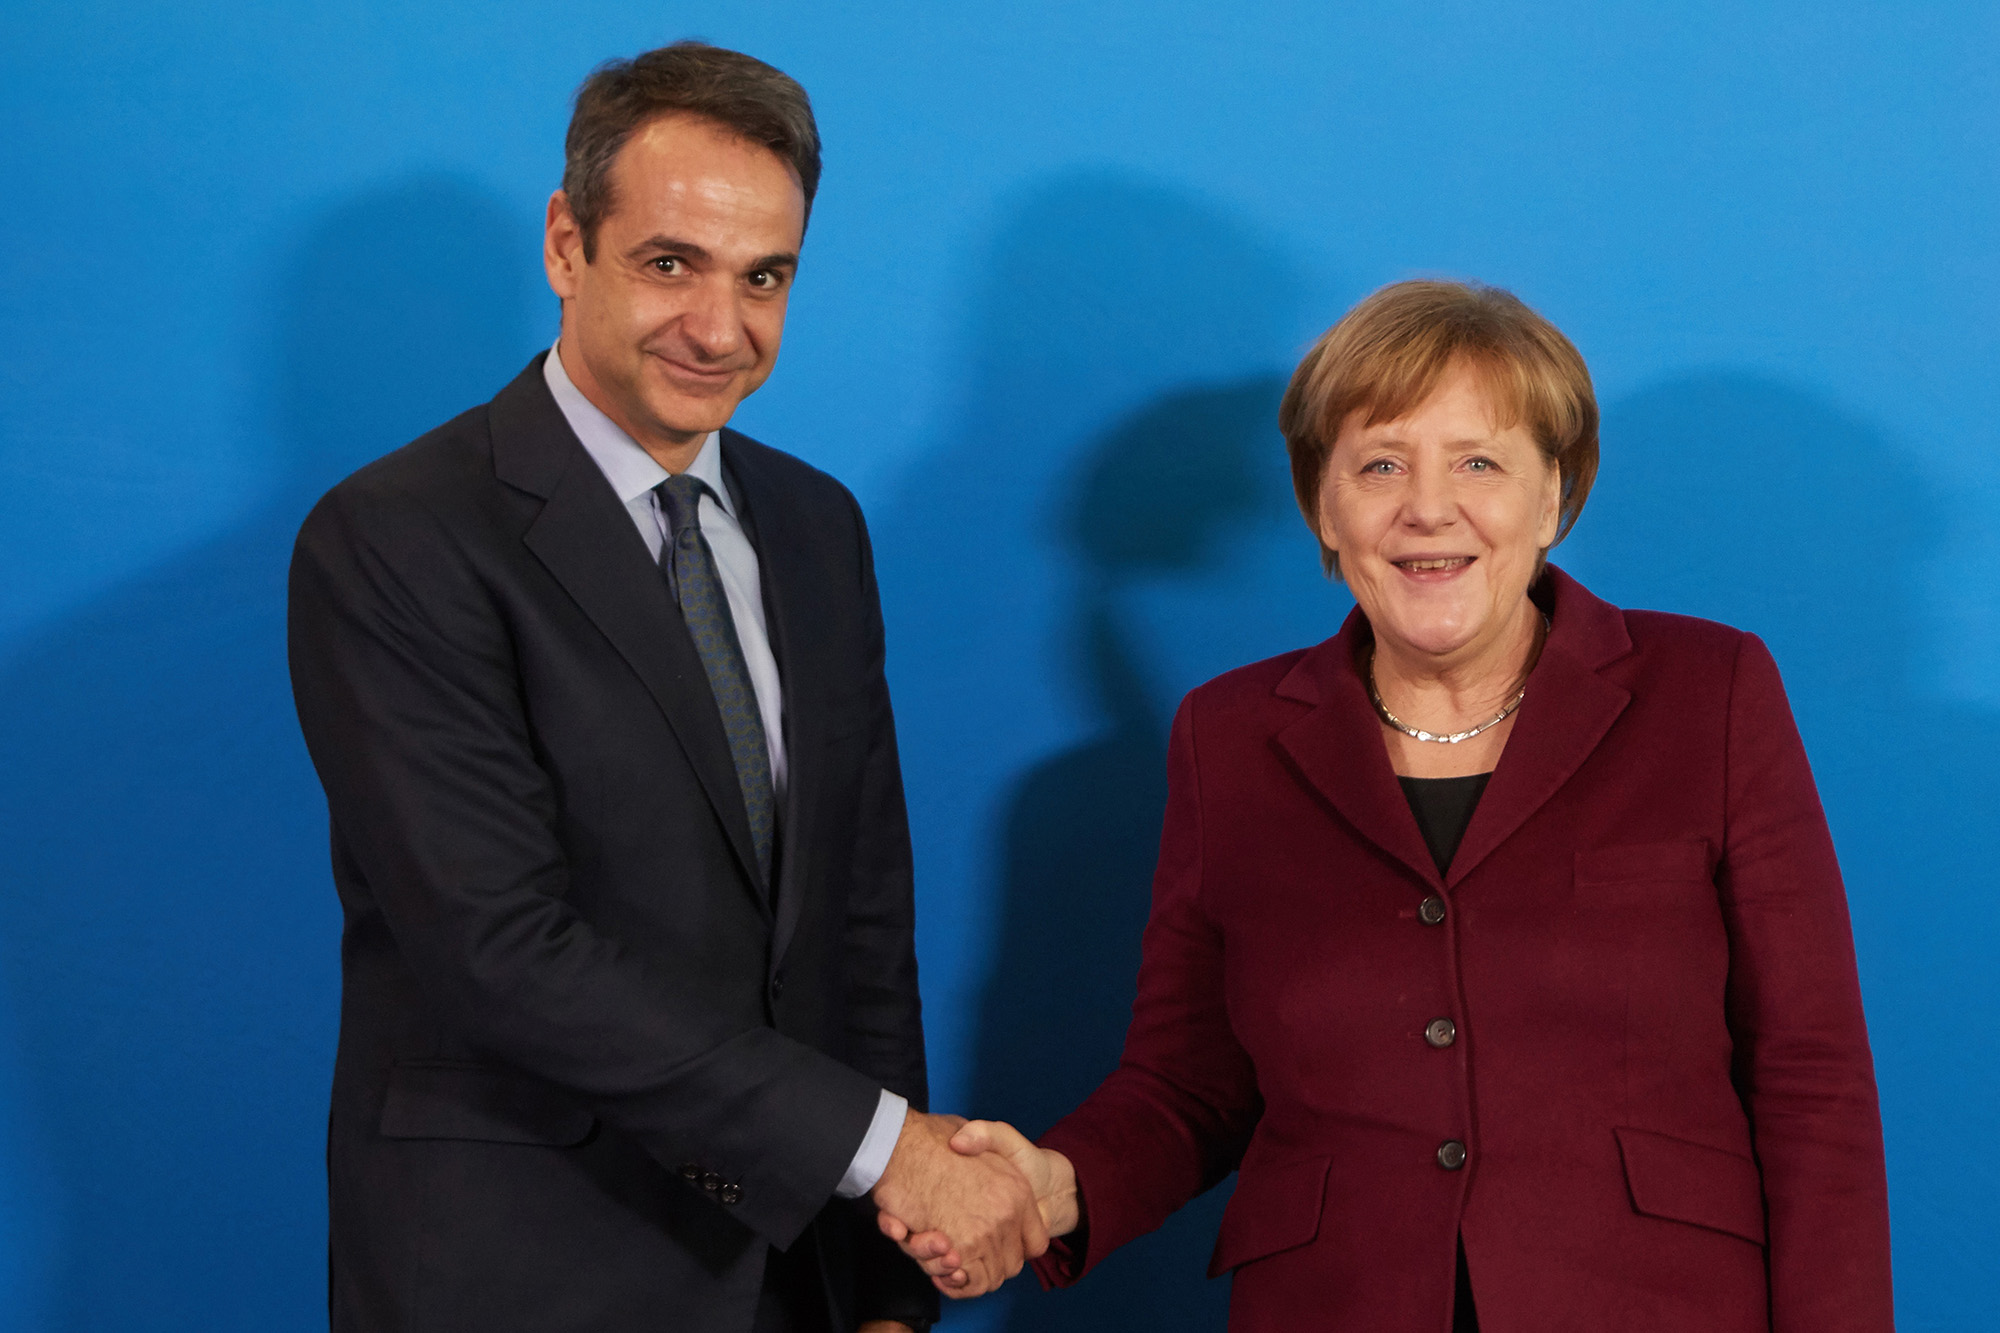 Visits to Berlin, The Hague and Paris before TIF for Kyriakos Mitsotakis